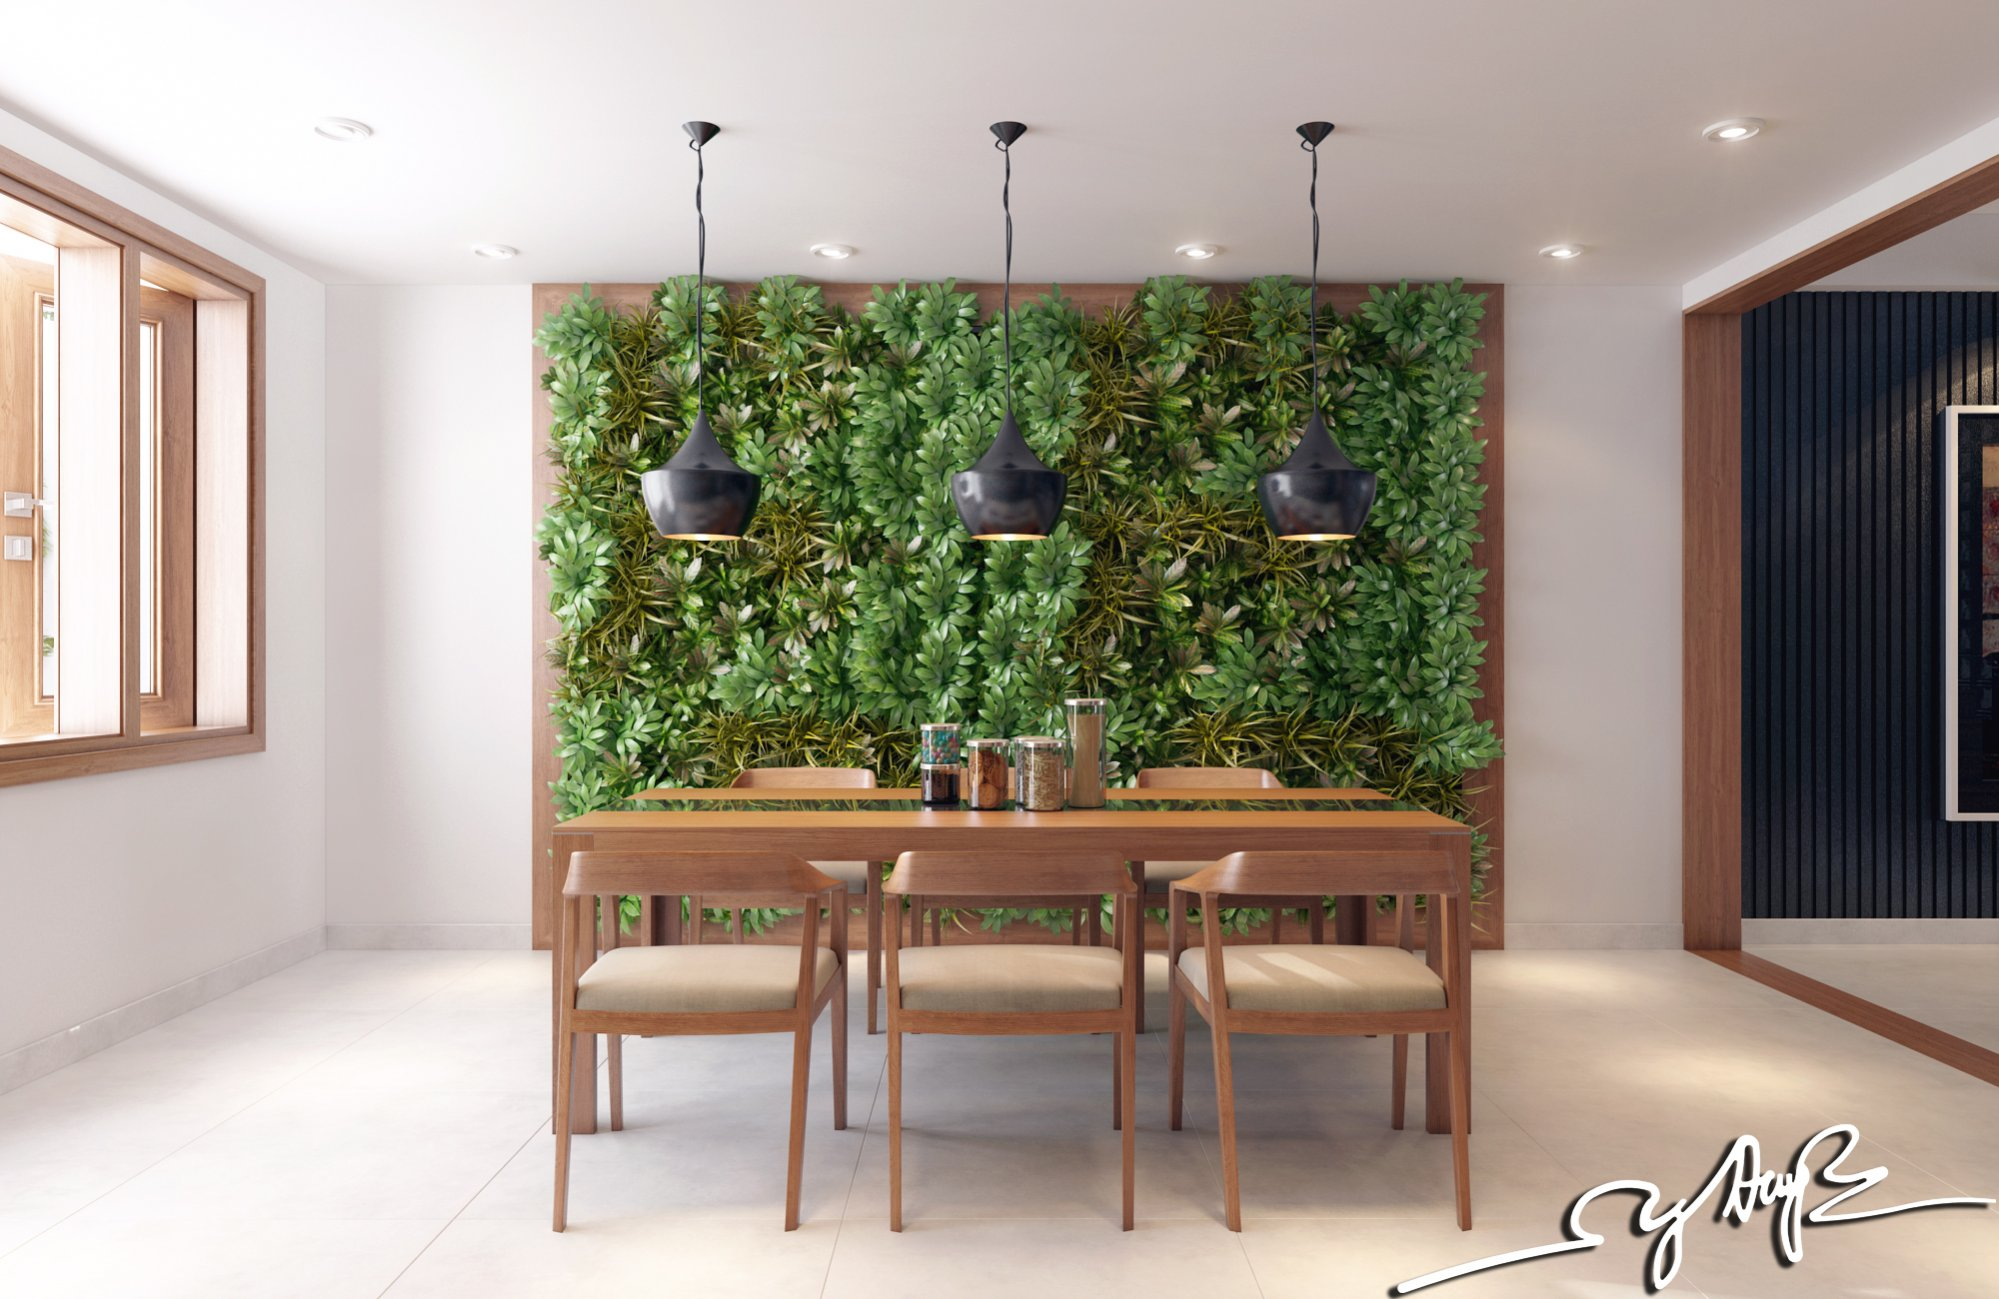 Garden wall interior design ideas